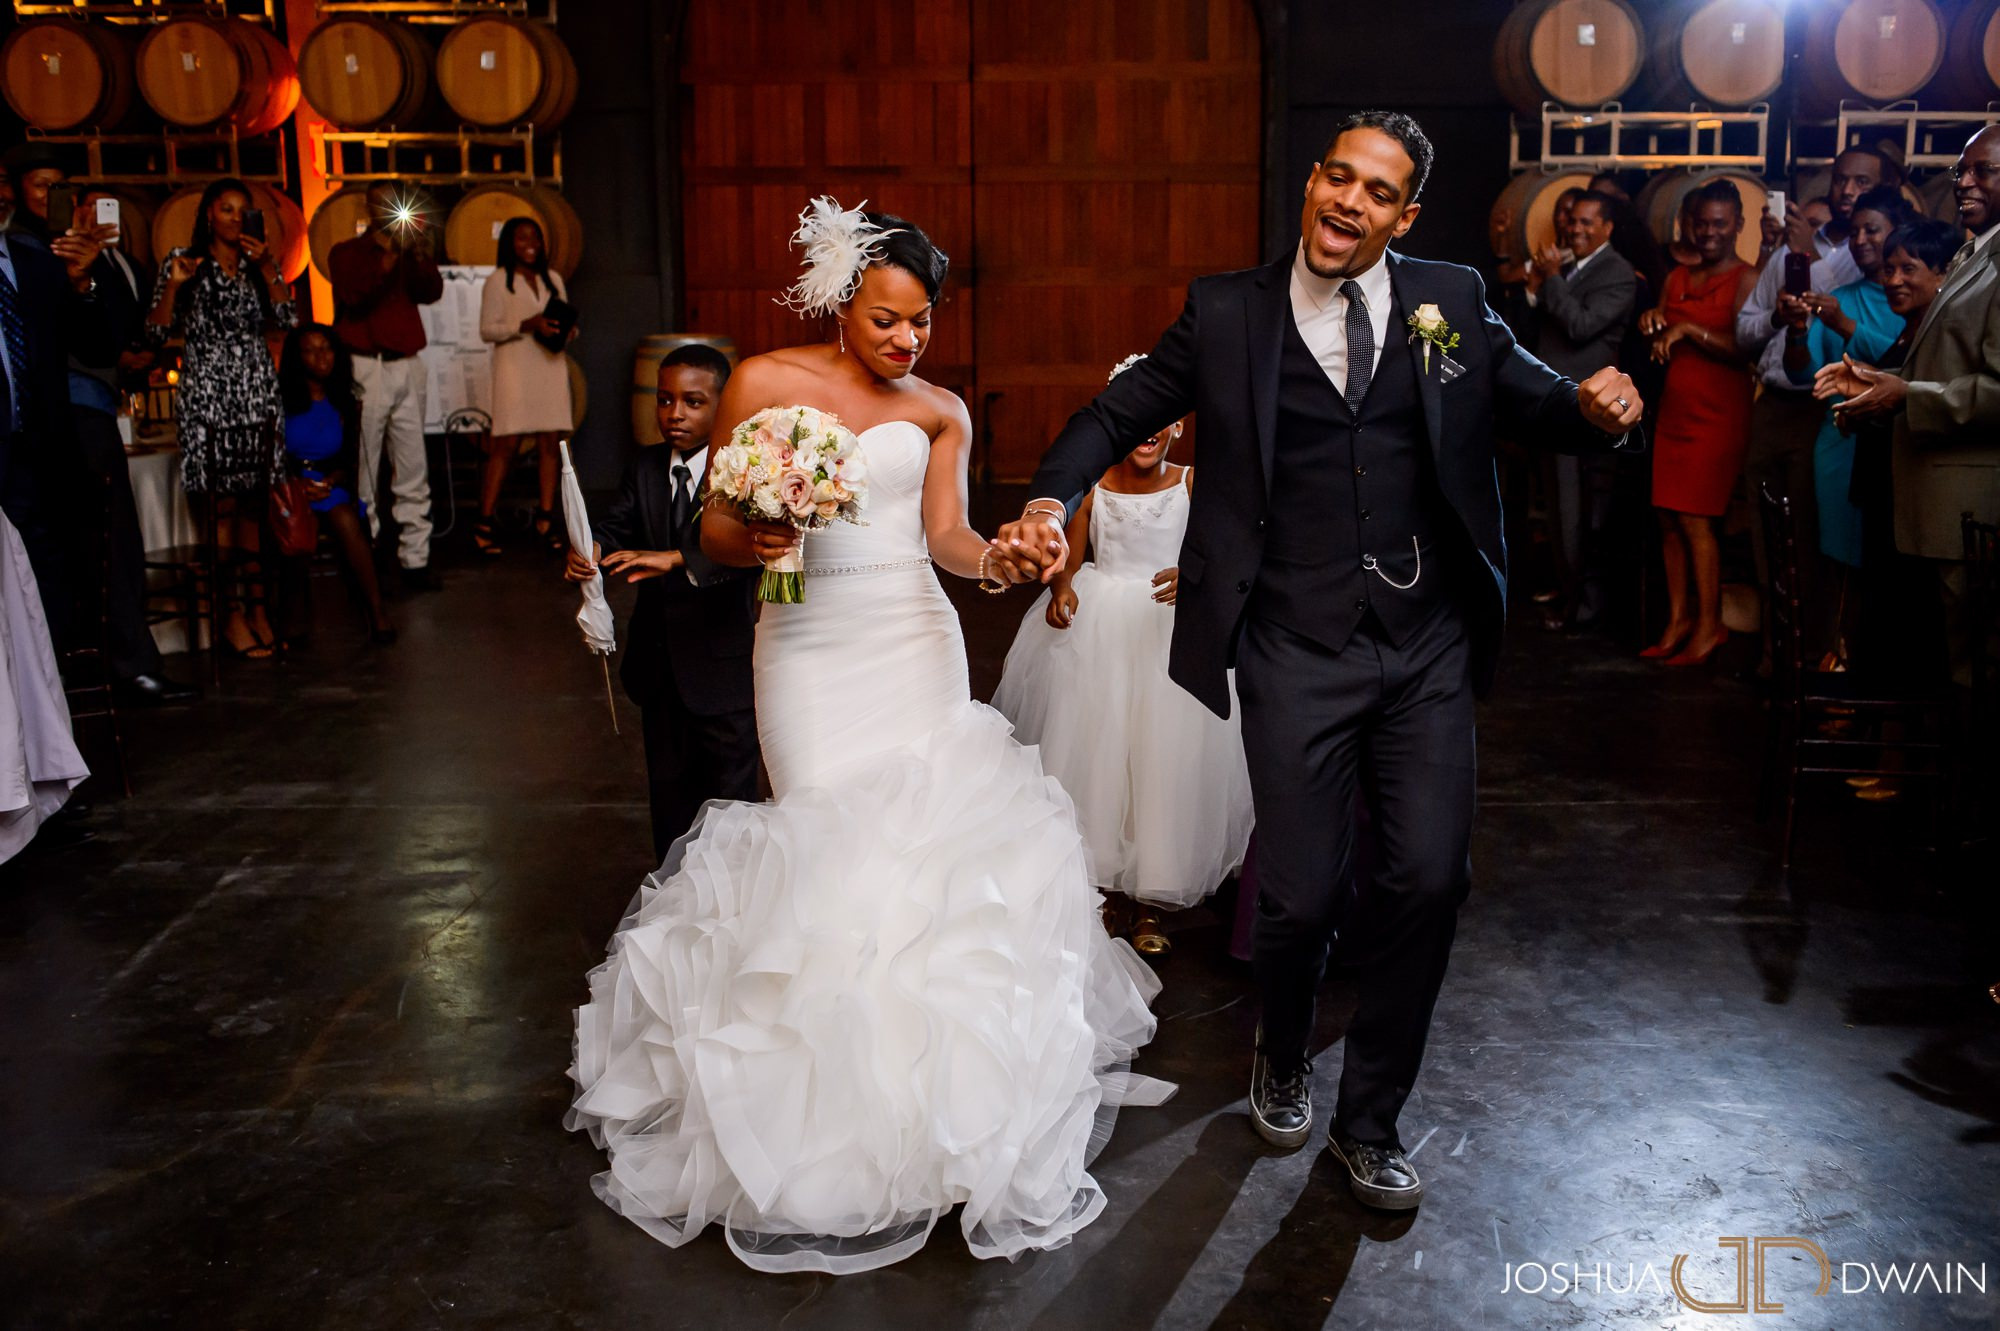 briana-donovan-28-leal-vineyards-winery-wedding-san-francisico-wedding-photographer-joshua-dwain